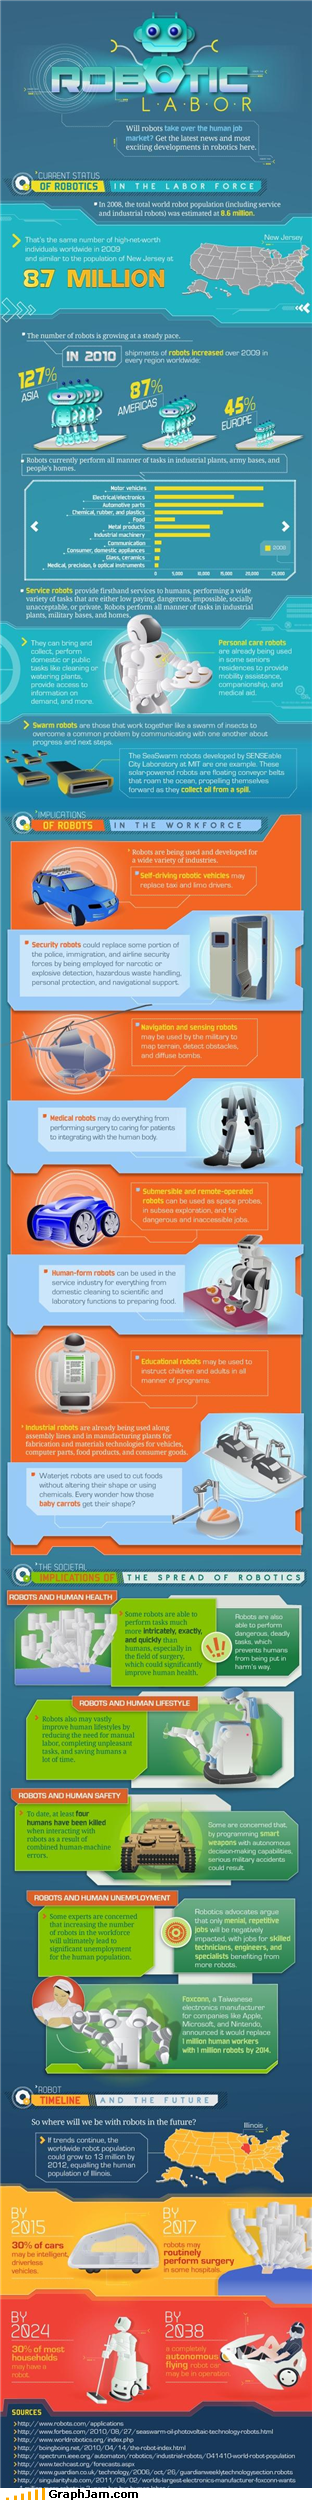 infographic,interesting,labor,robots